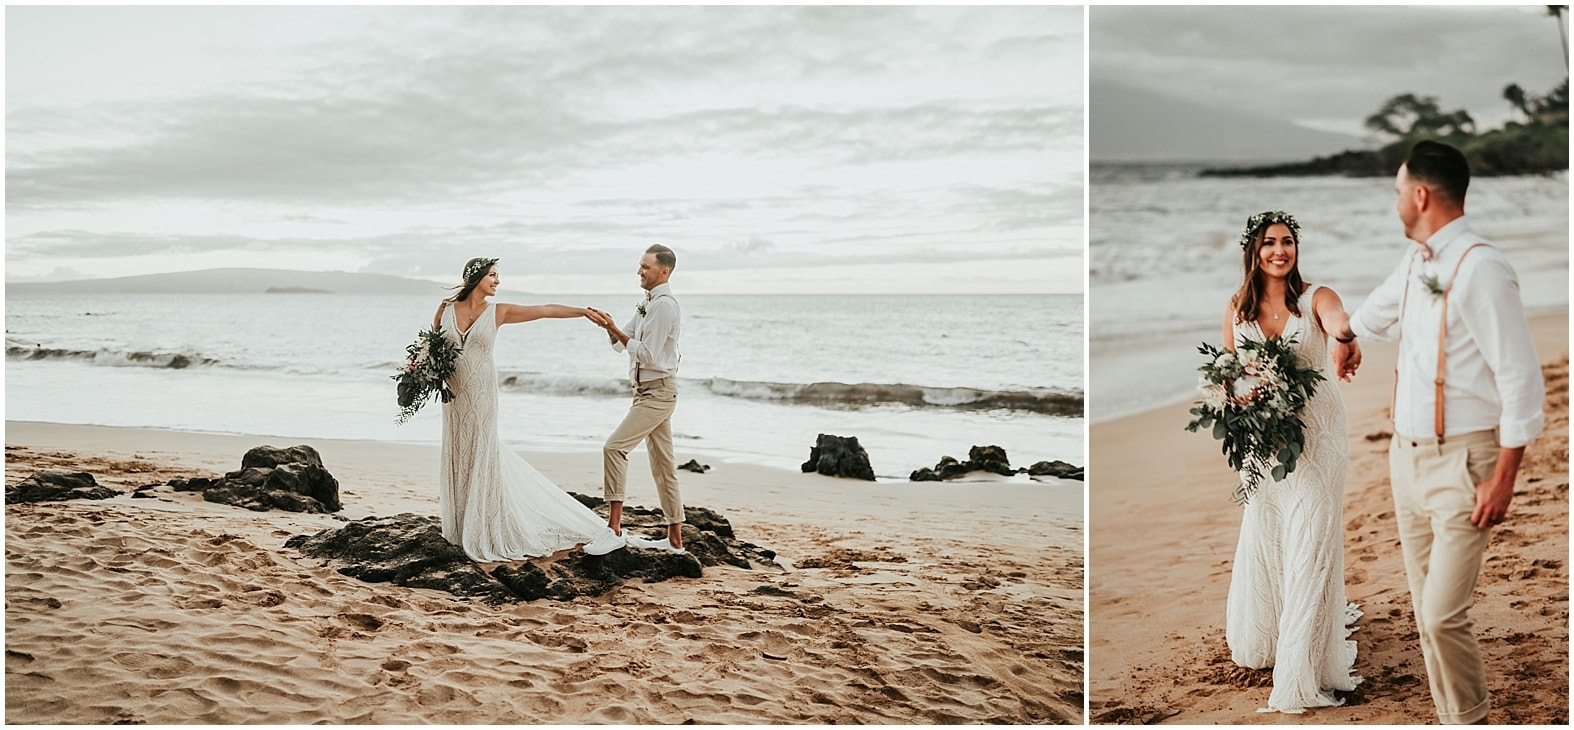 Wailea wedding photographer maui25